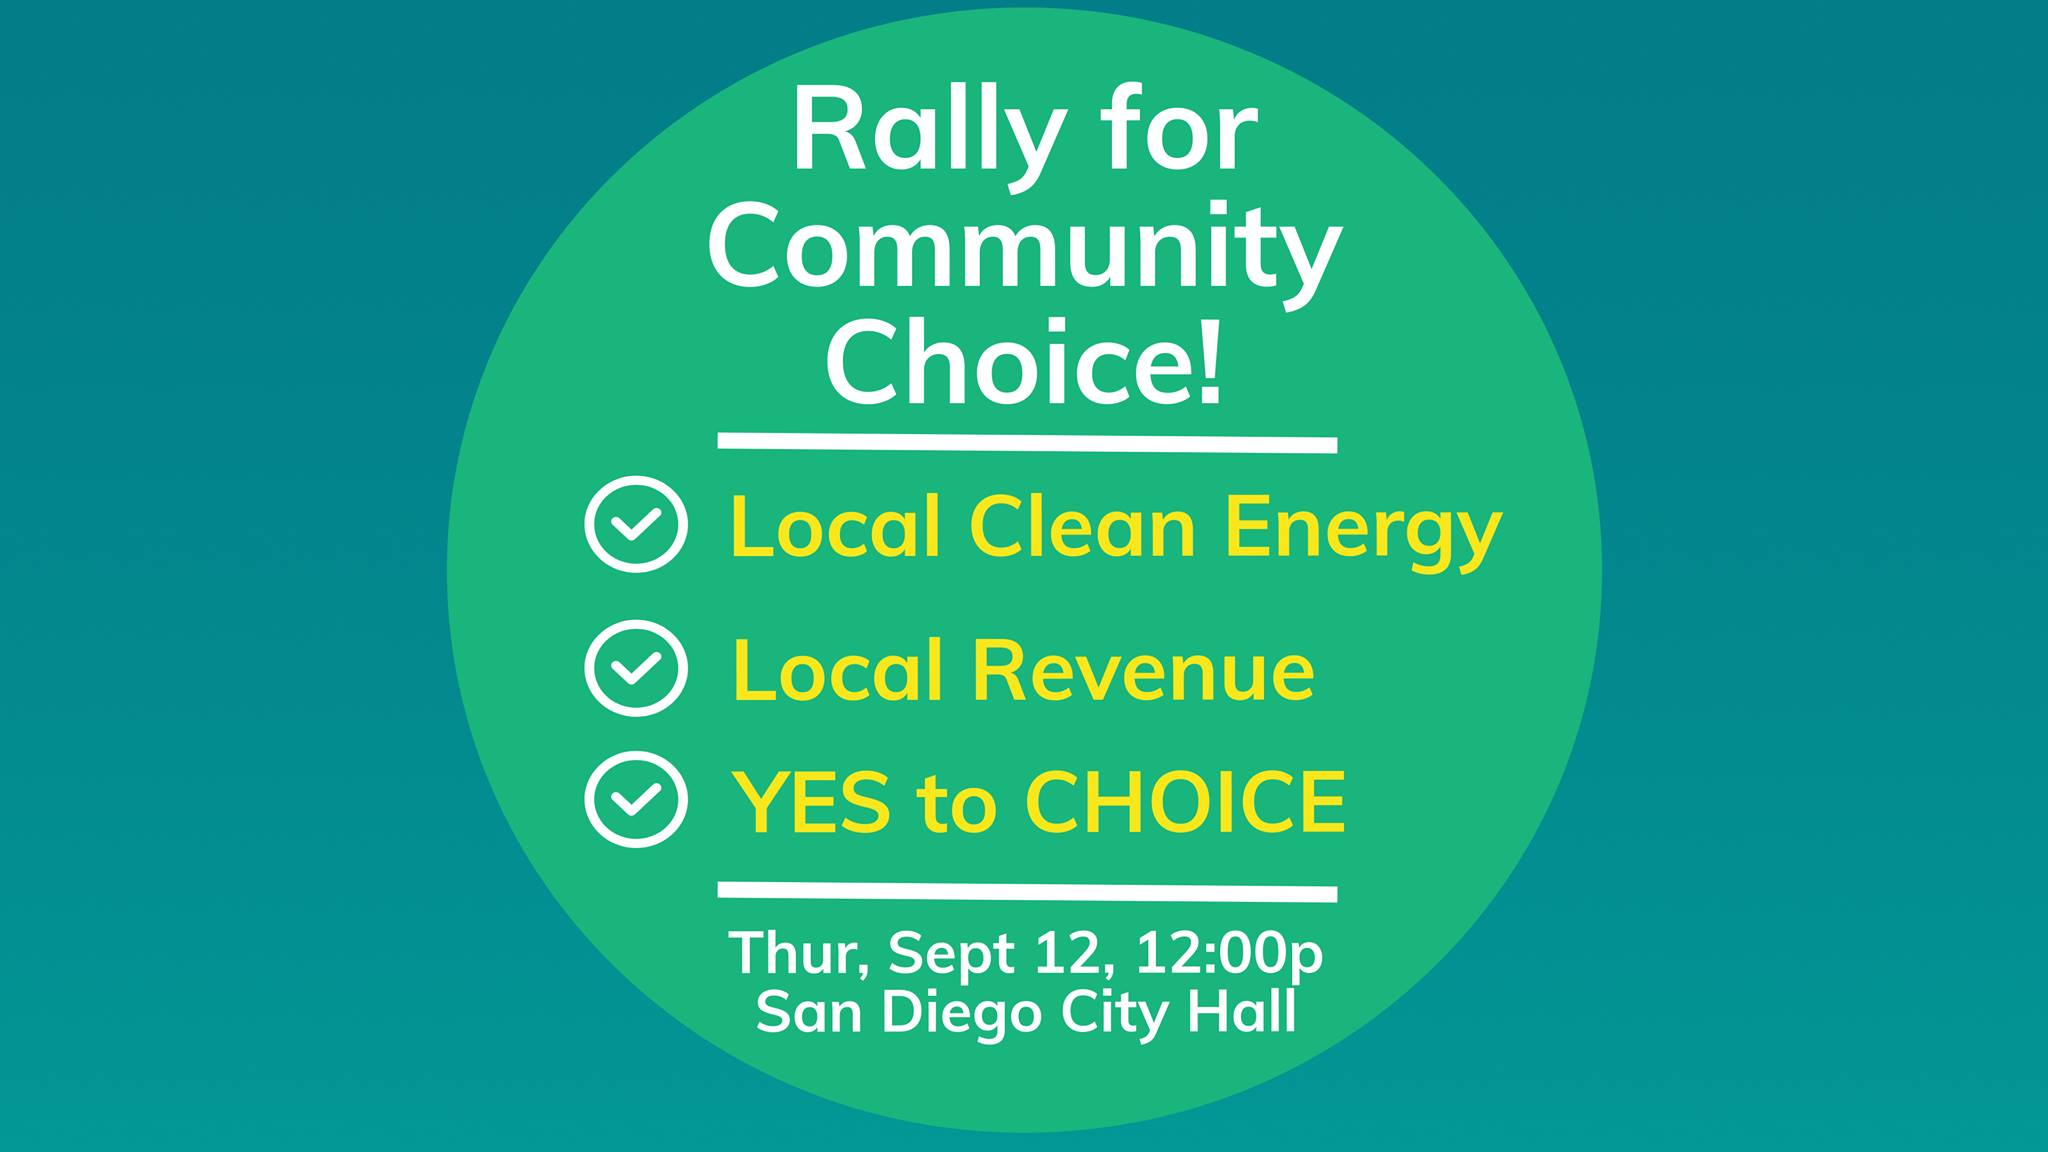 Rally for Community Choice!